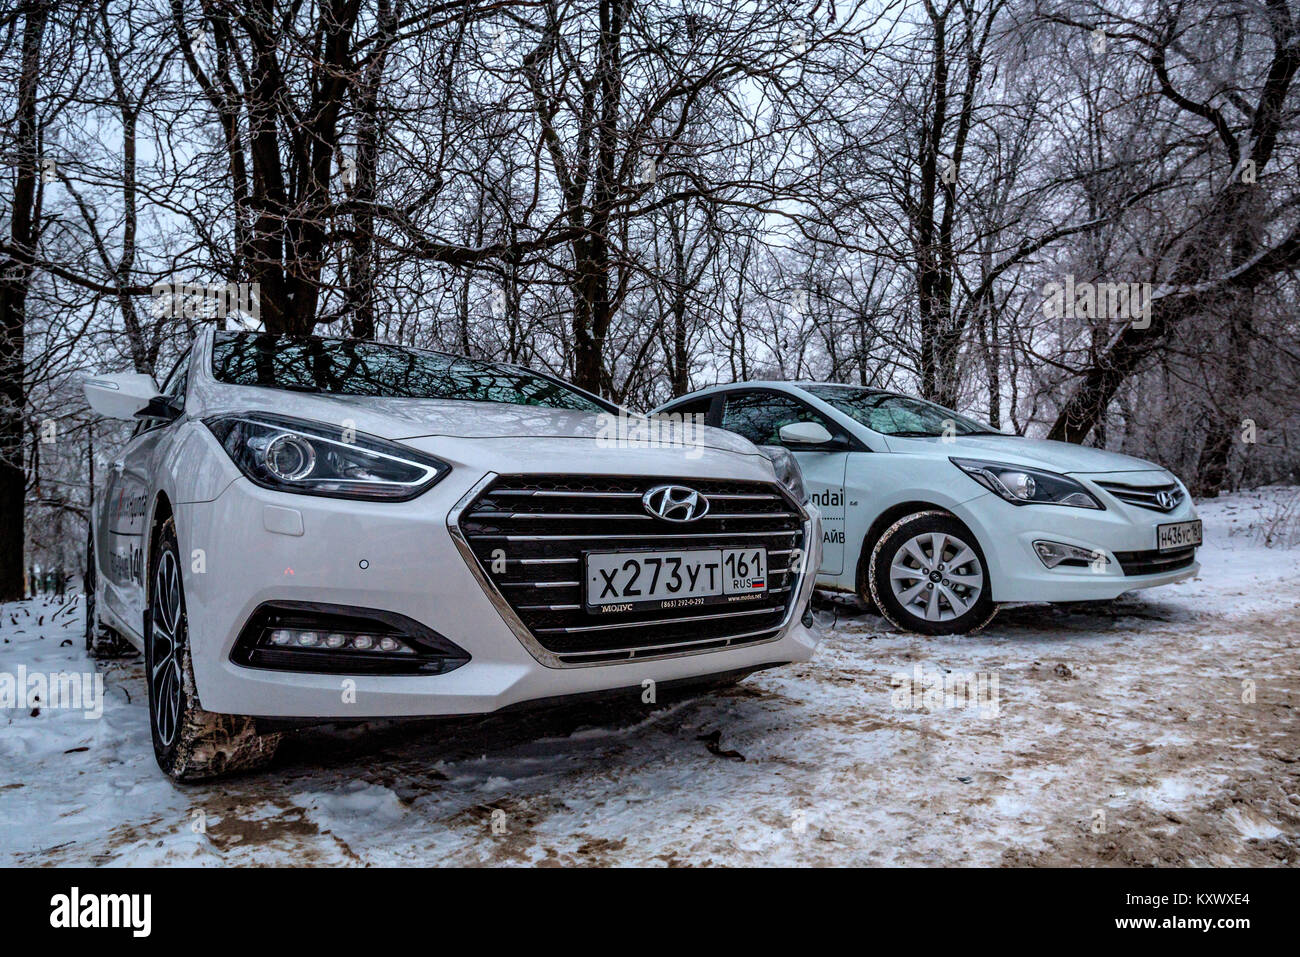 ROSTOV-ON-DON, RUSSIA- CIRCA DECEMBER 2016: Hyundai i40 and Hyundai Solaris - Stock Image